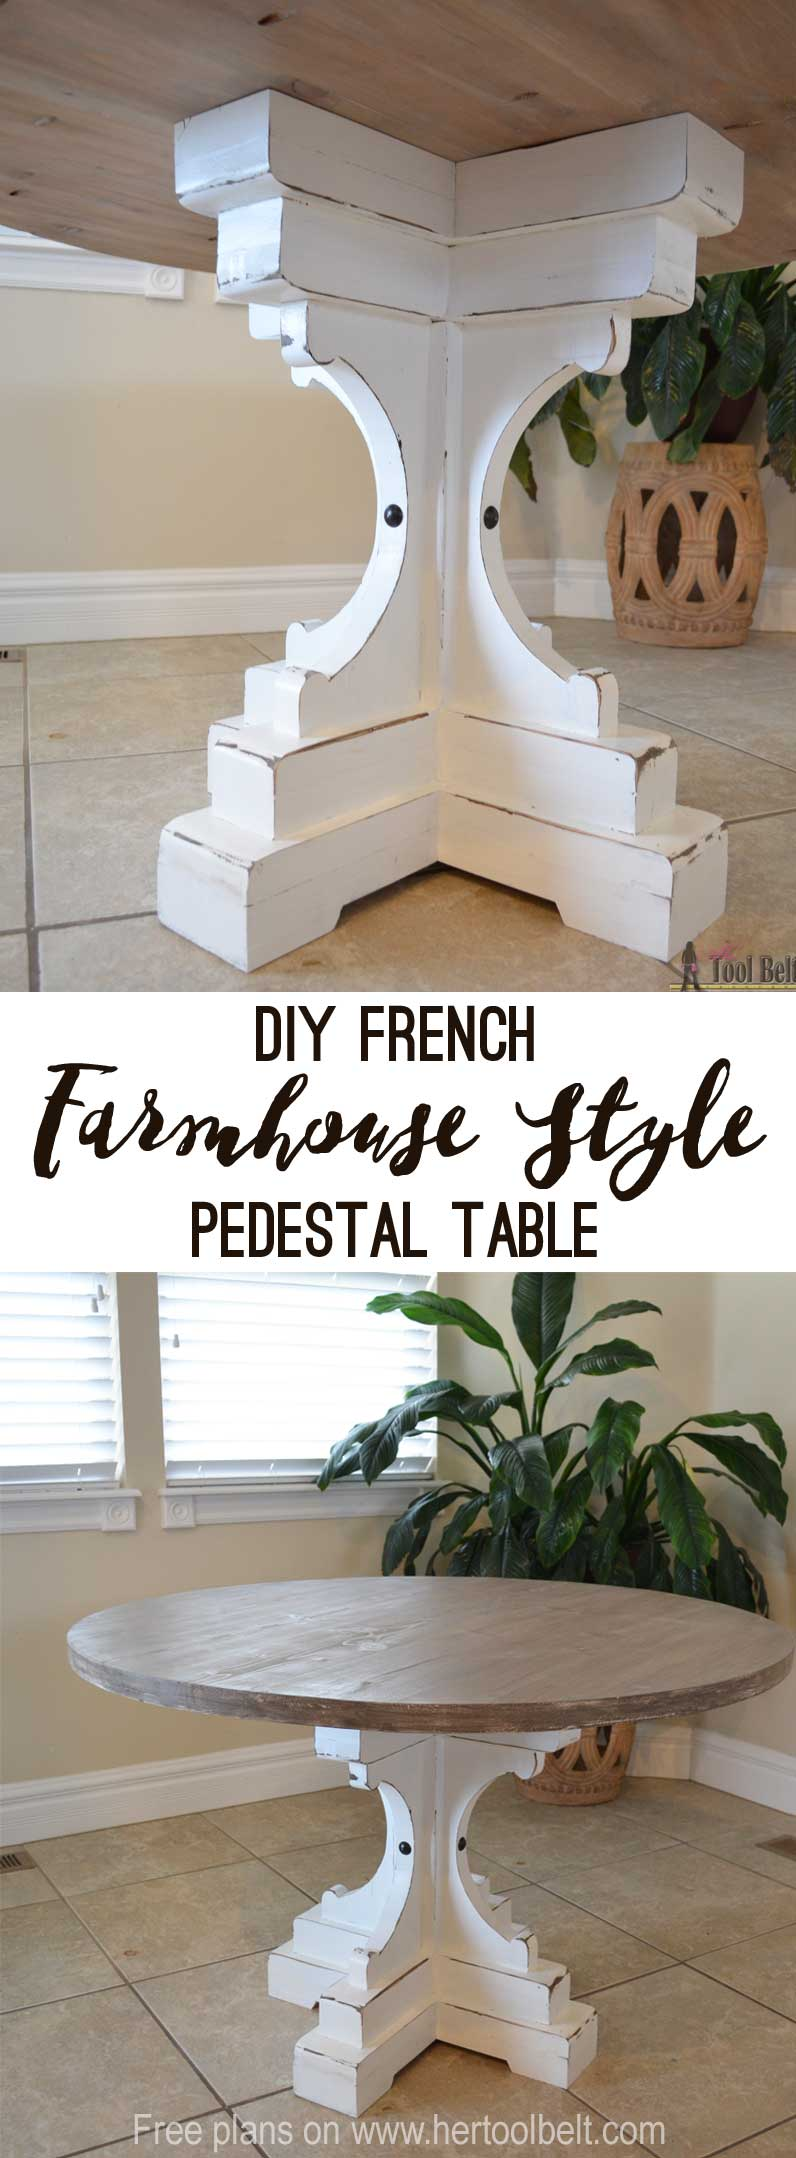 Do It Yourself Home Design: Farmhouse Style Round Pedestal Table